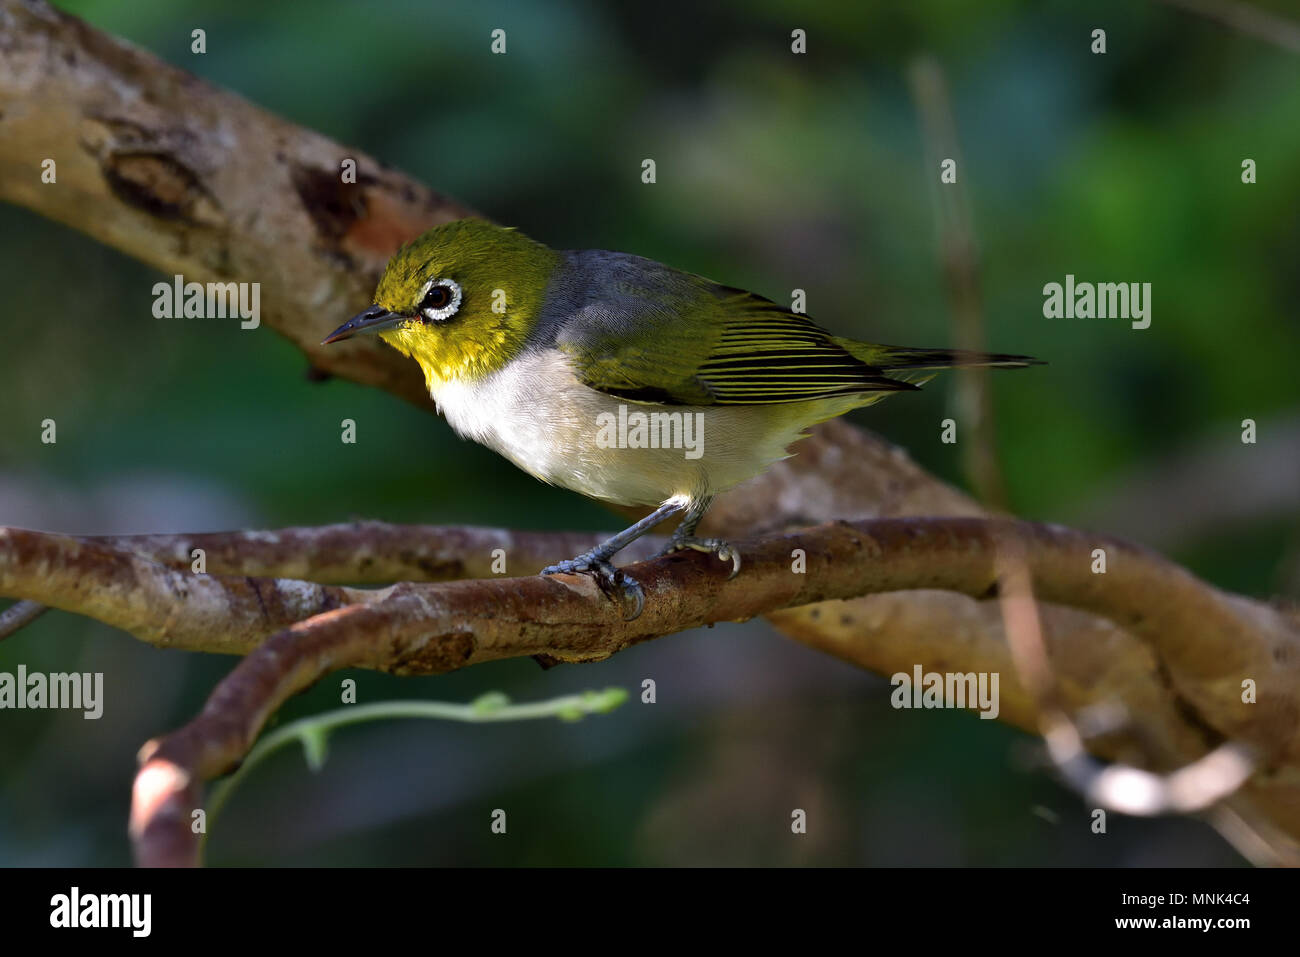 An Australian, Queensland Silvereye, Zosterops lateralis resting on a Tree branch - Stock Image